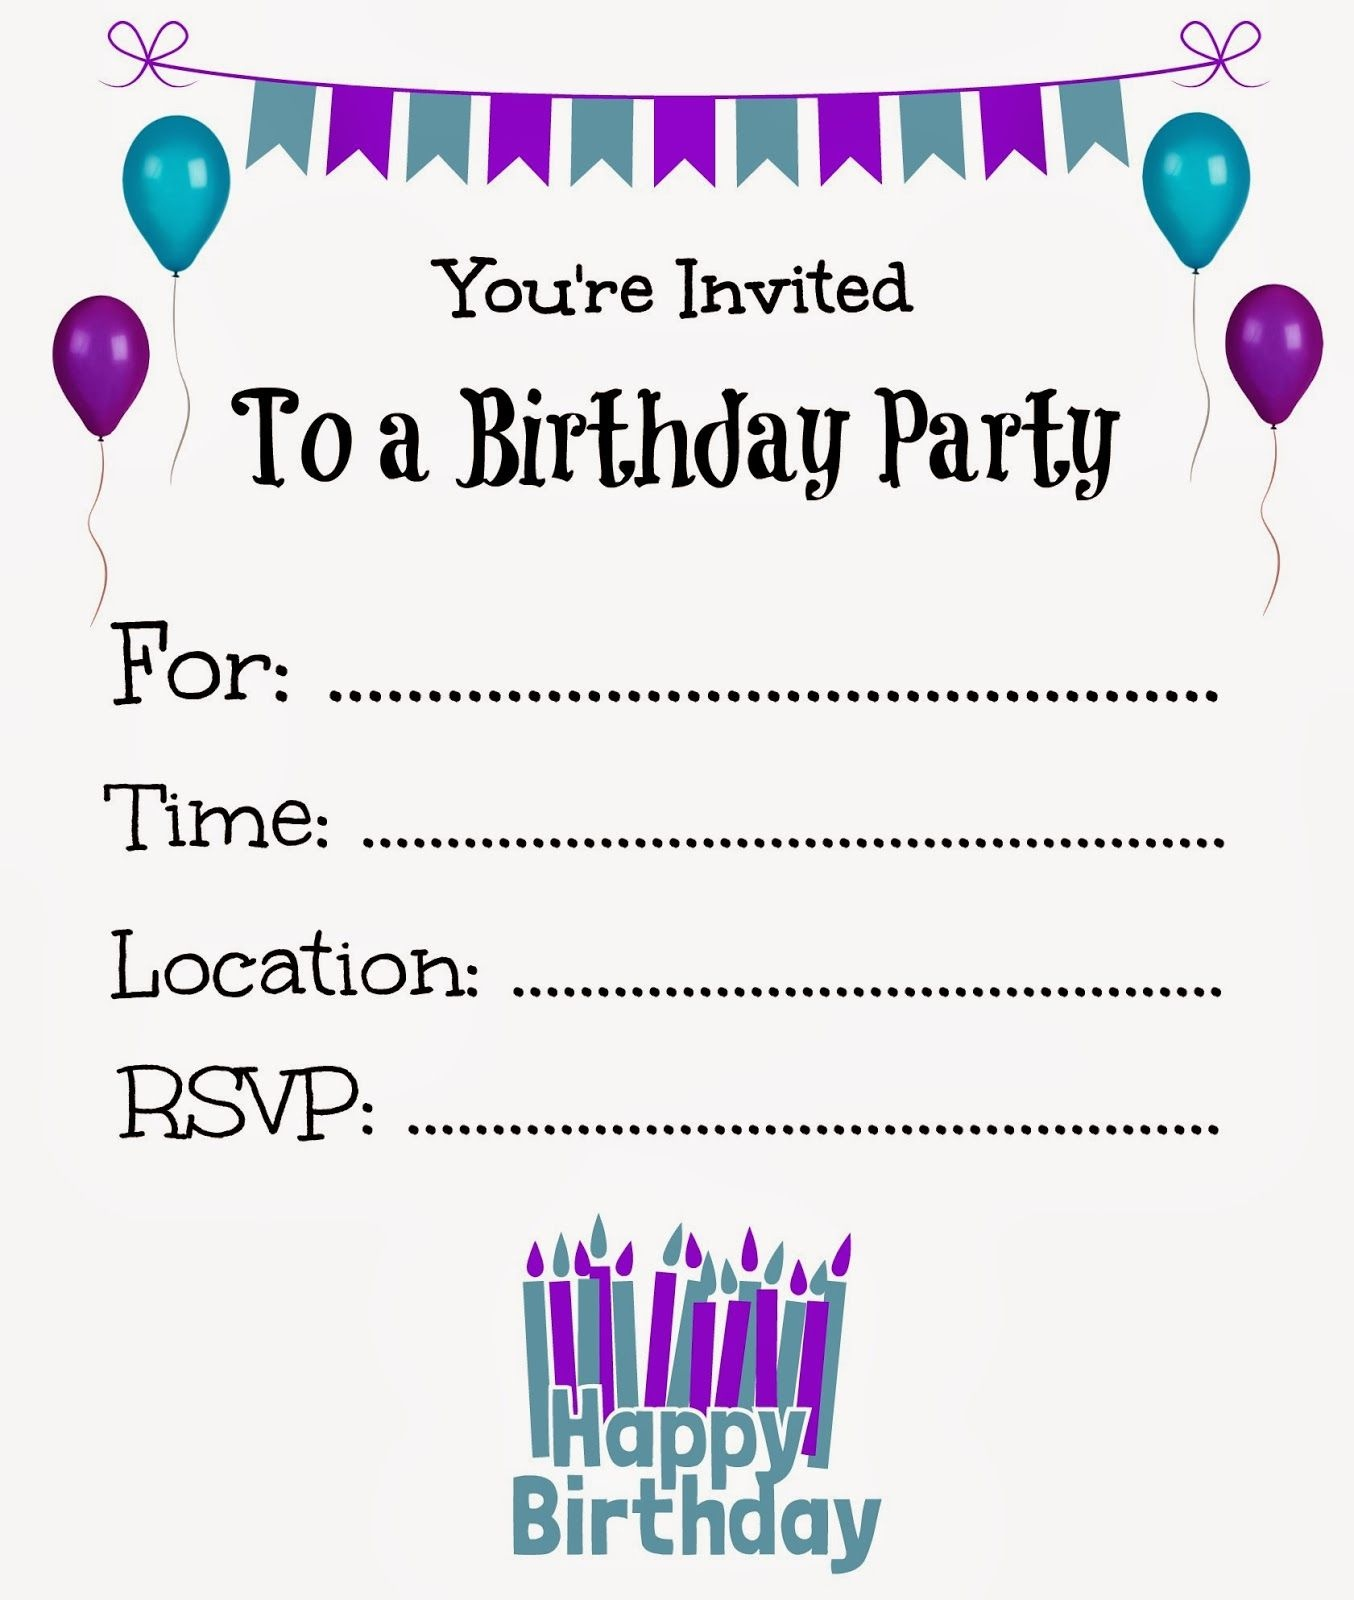 Free Printable Birthday Invitations For Kids #freeprintables - Make Your Own Birthday Party Invitations Free Printable